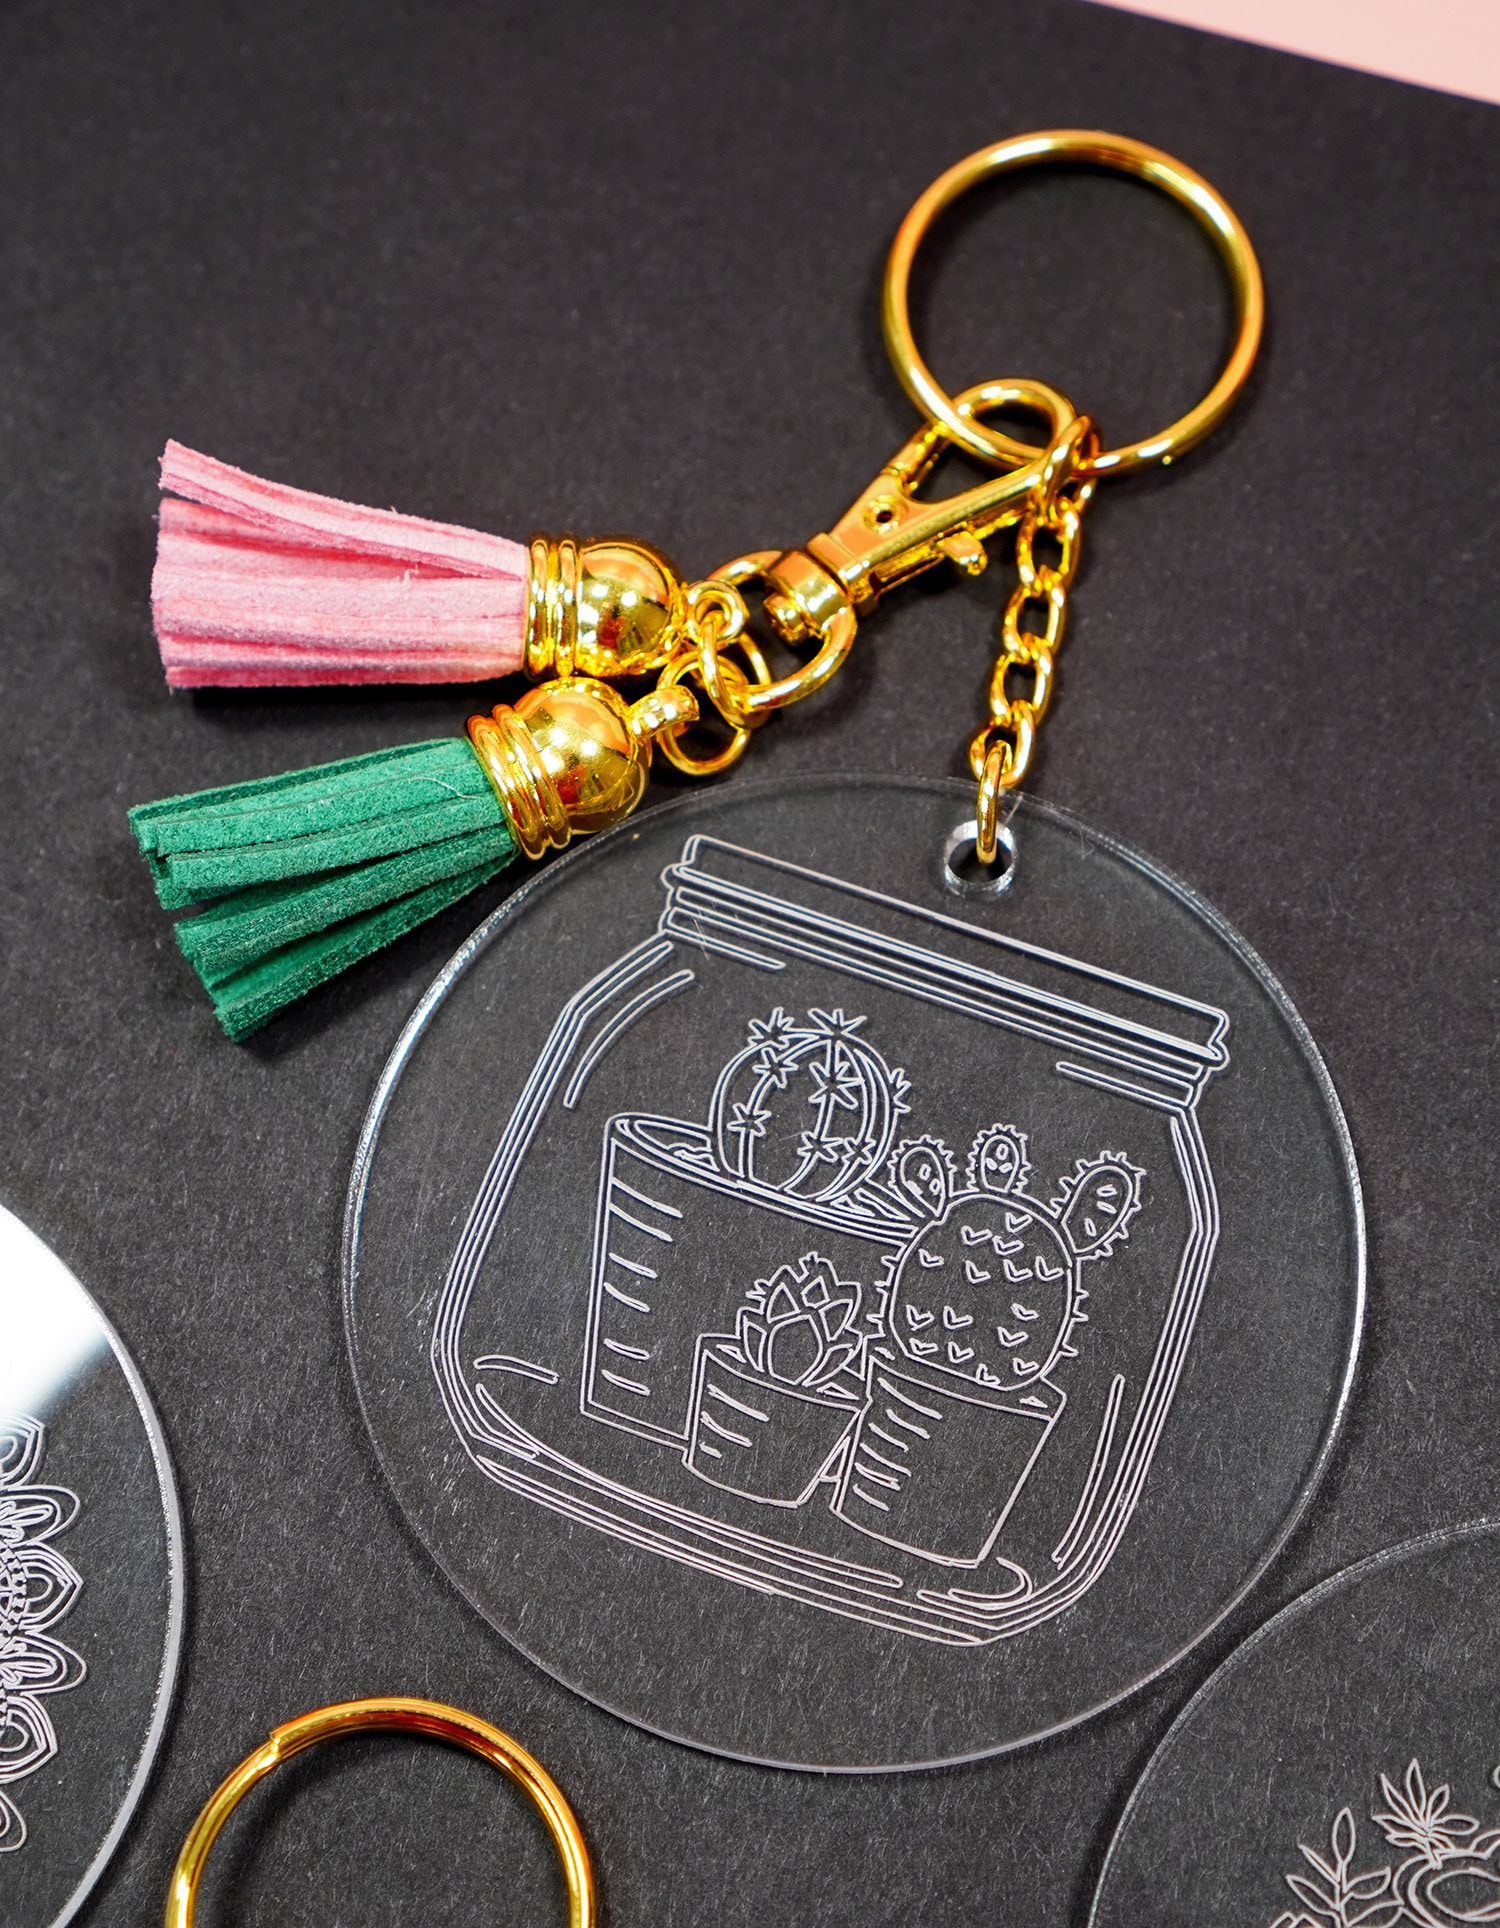 Cactus engraved acrylic keychain made with Cricut Maker Engraving Tool